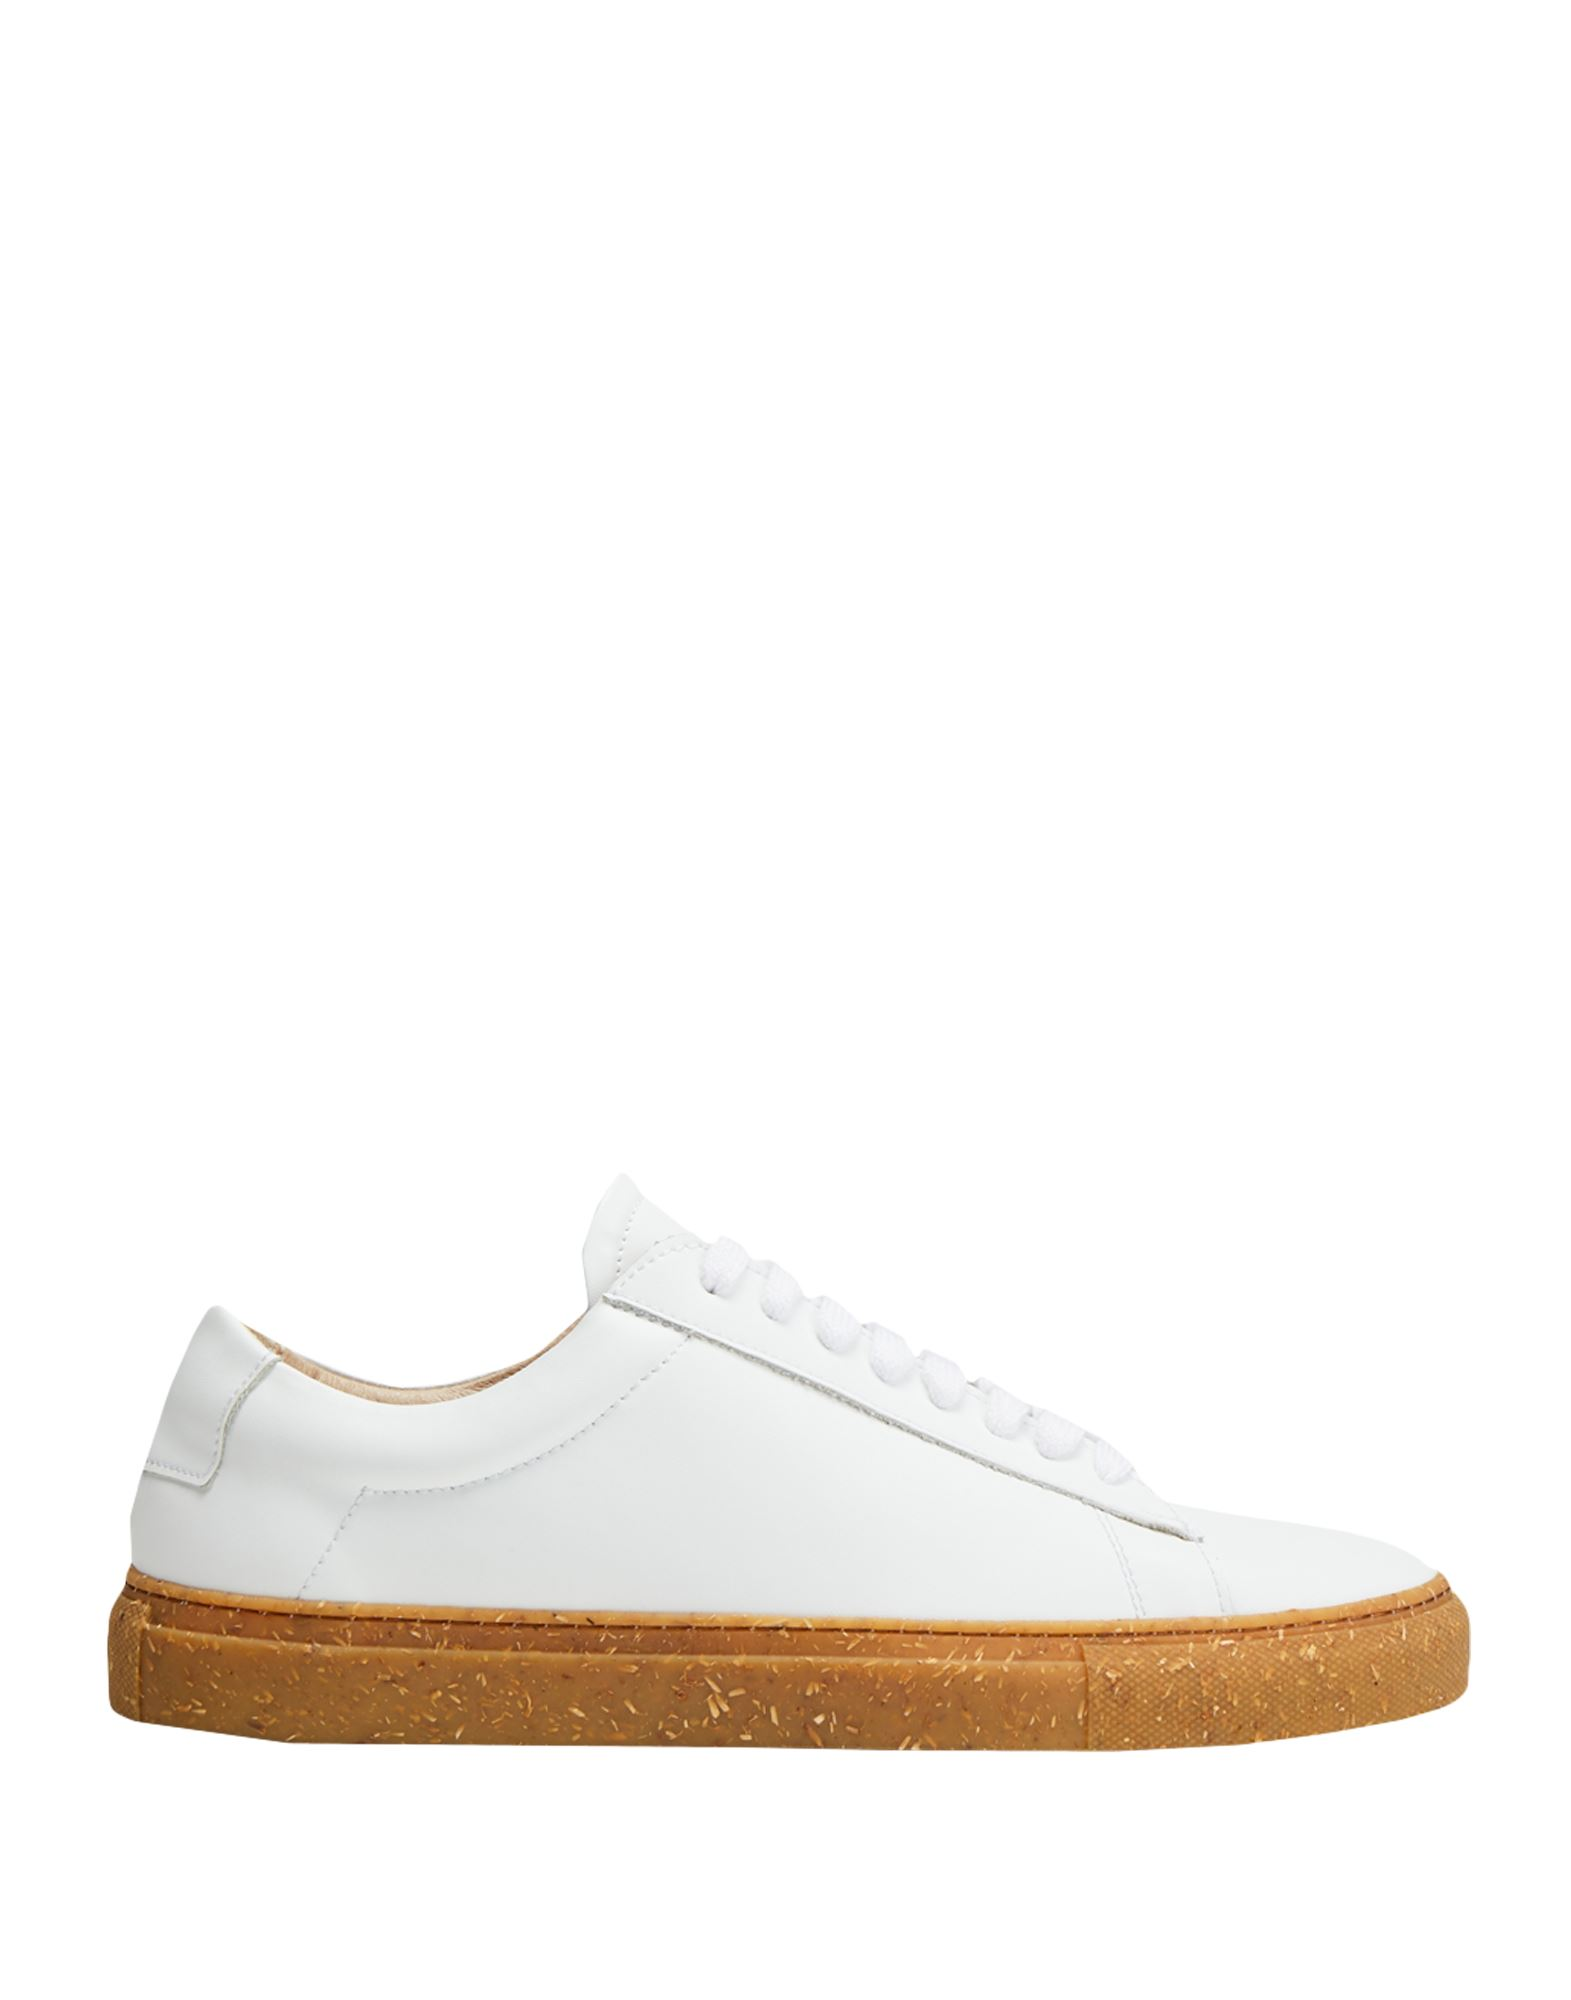 8 by YOOX メンズ スニーカー RECLAIMED LEATHER SNEAKER ホワイト